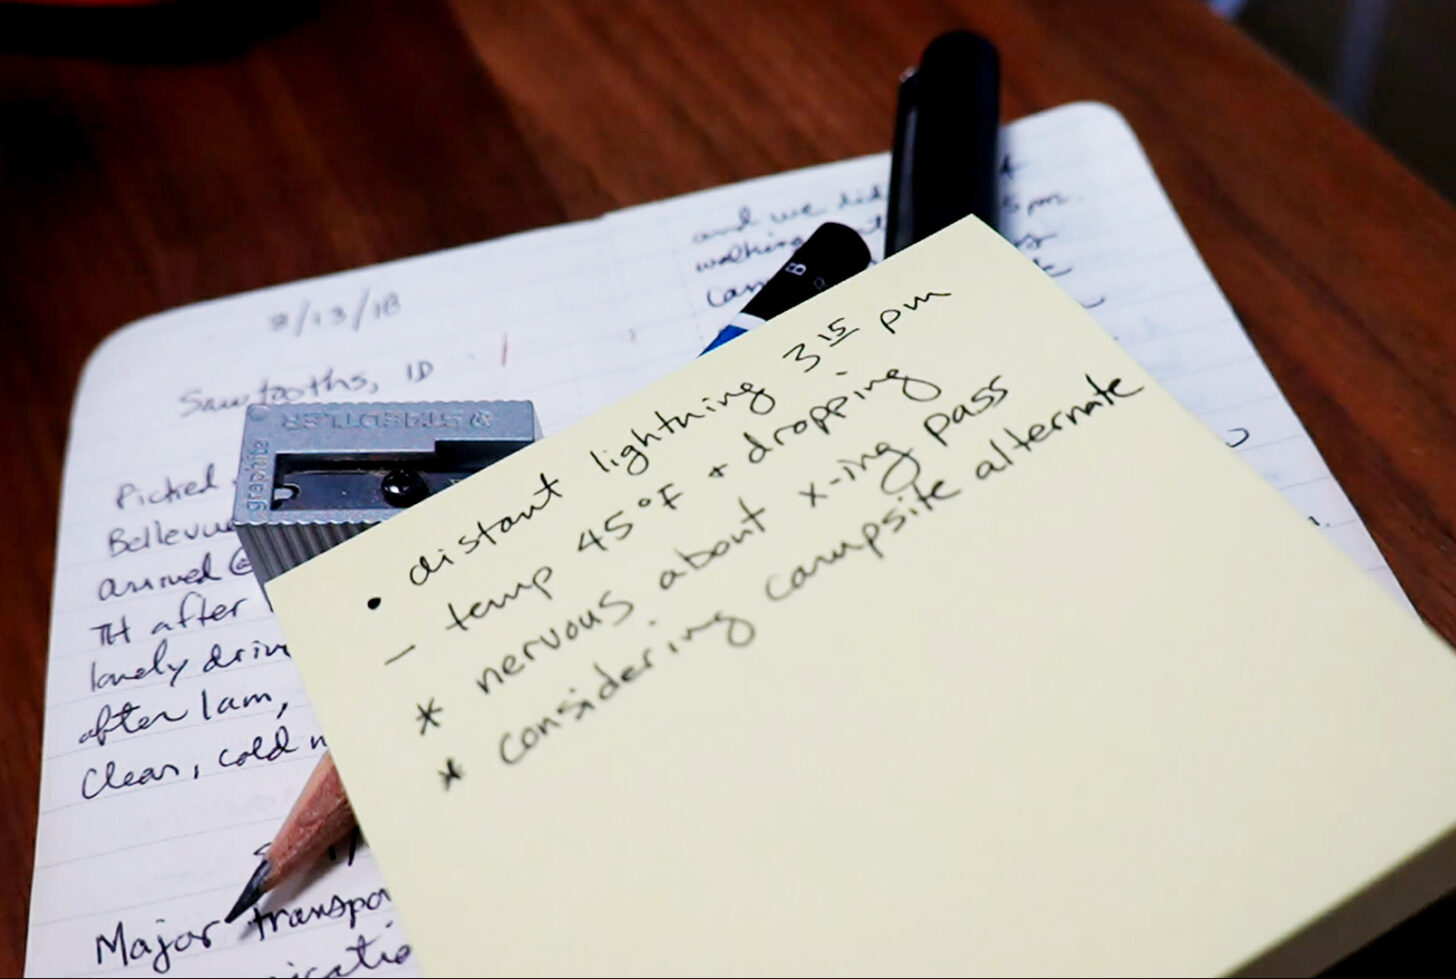 a sticky note sits on top of a pencil, pen, pencil sharpener, and small notebook. On the sticky note are a few bullet points with notes next to them.